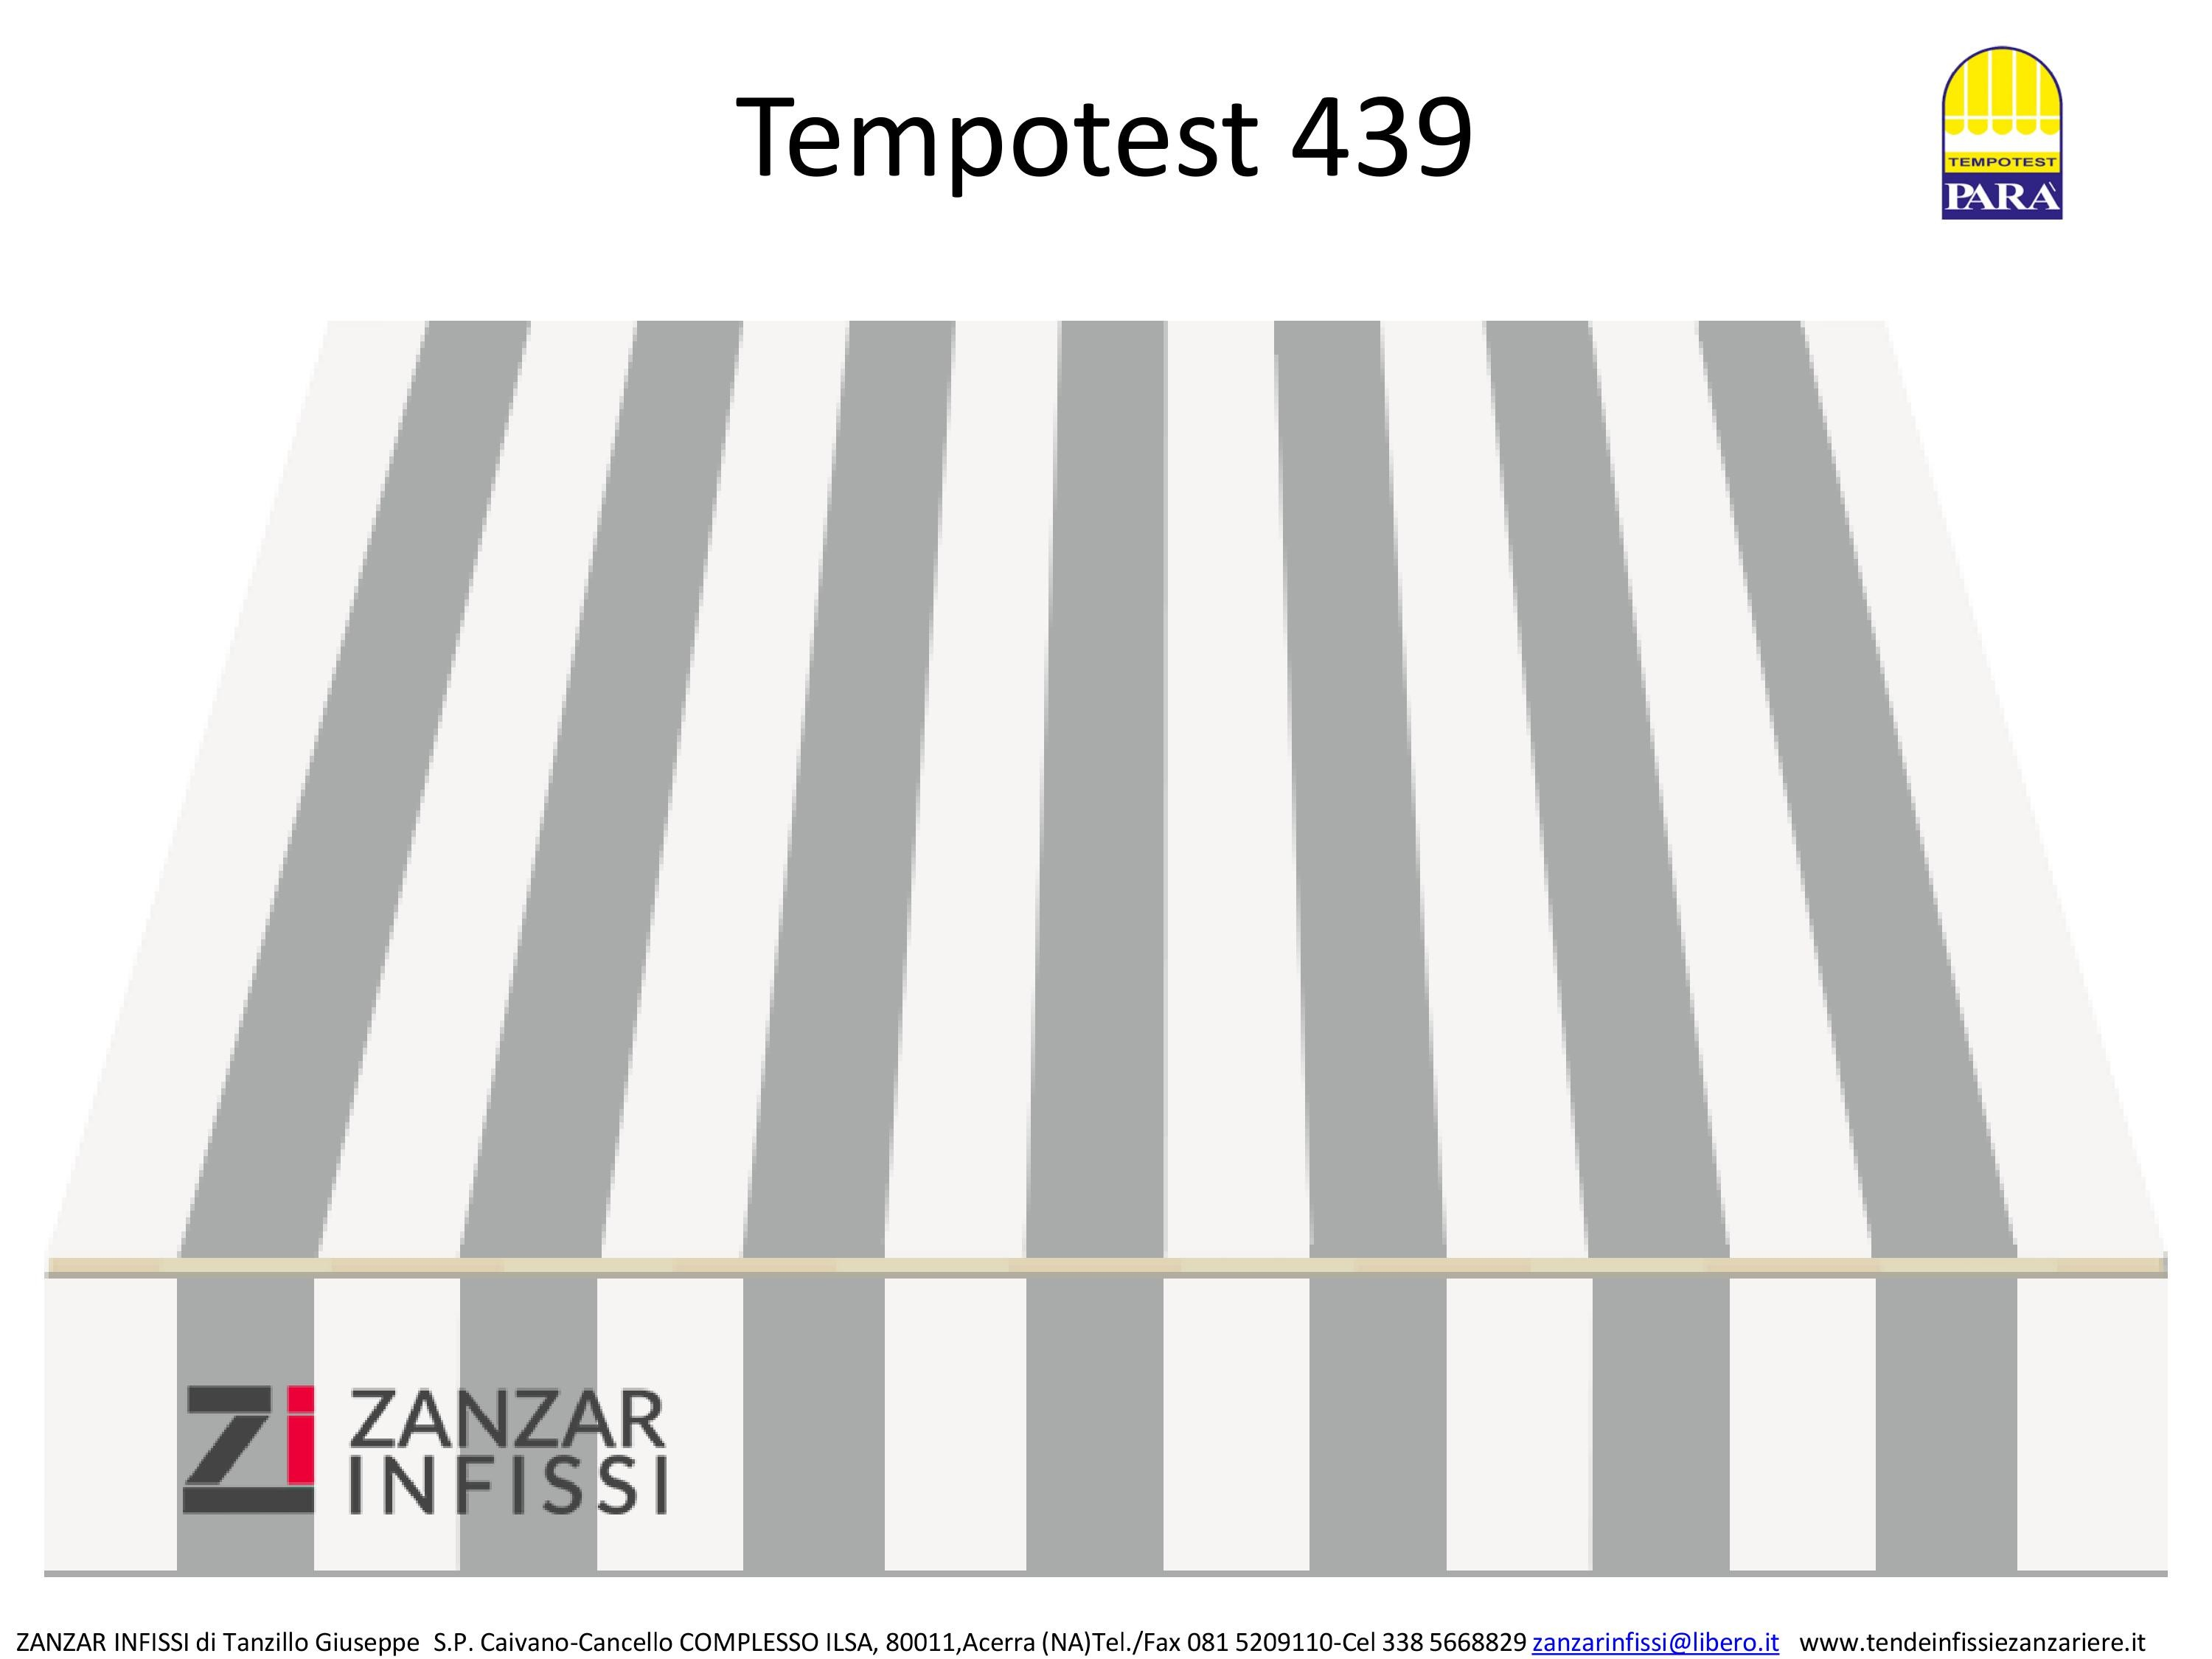 Tempotest 439